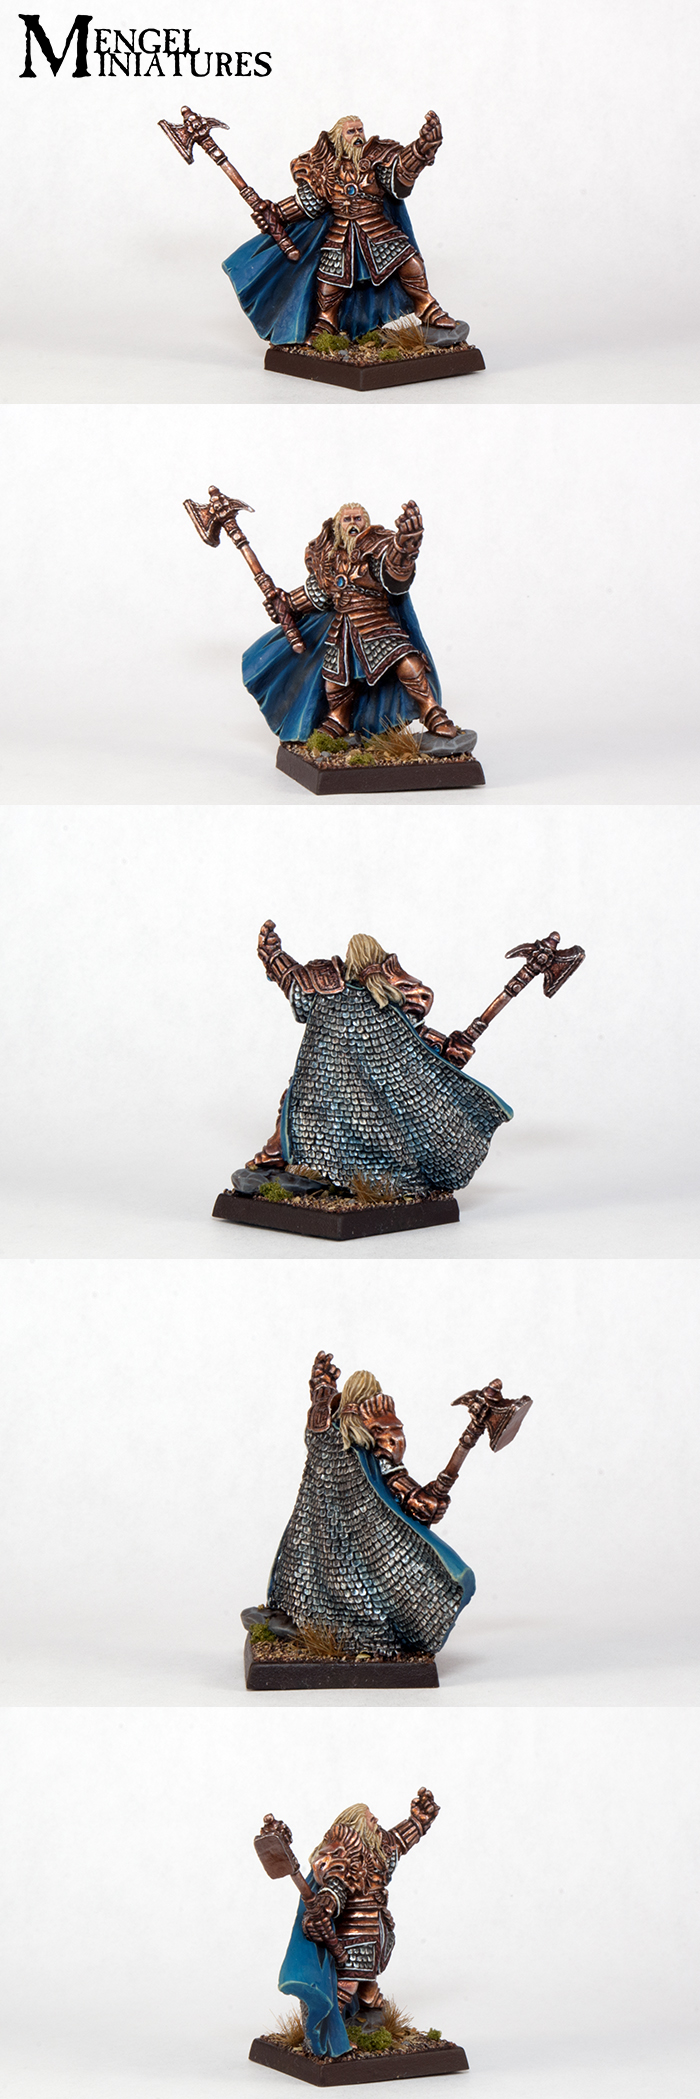 Valten, Exalted of Sigmar